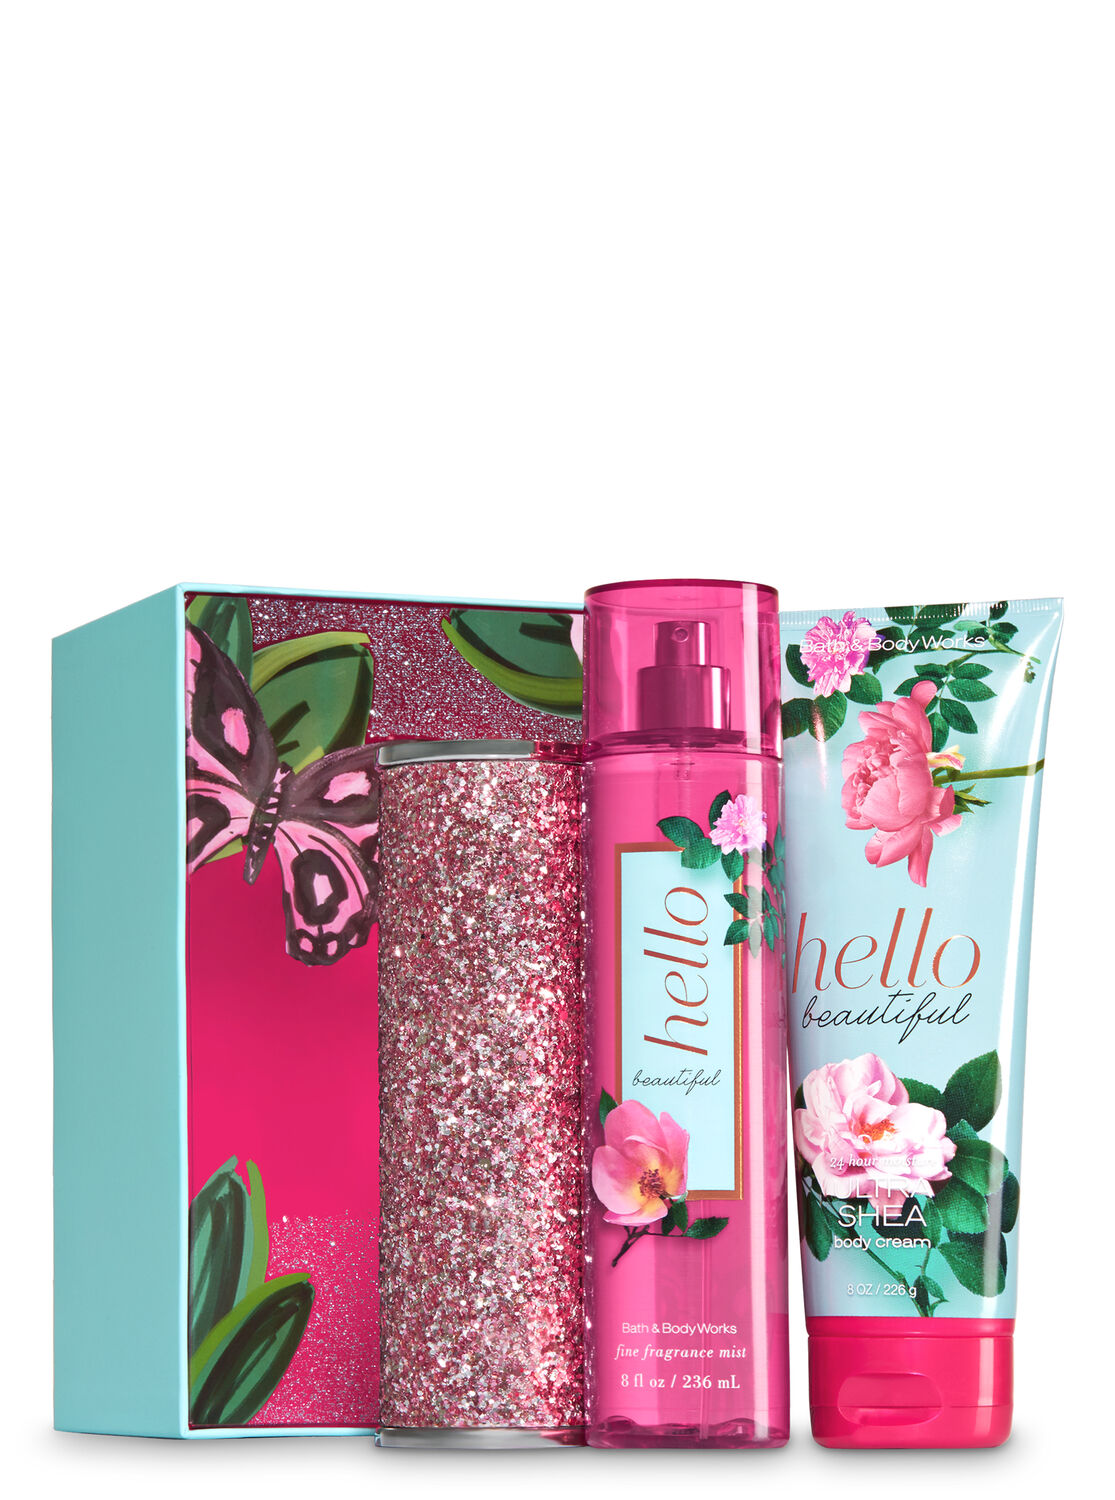 Bath and body works gift